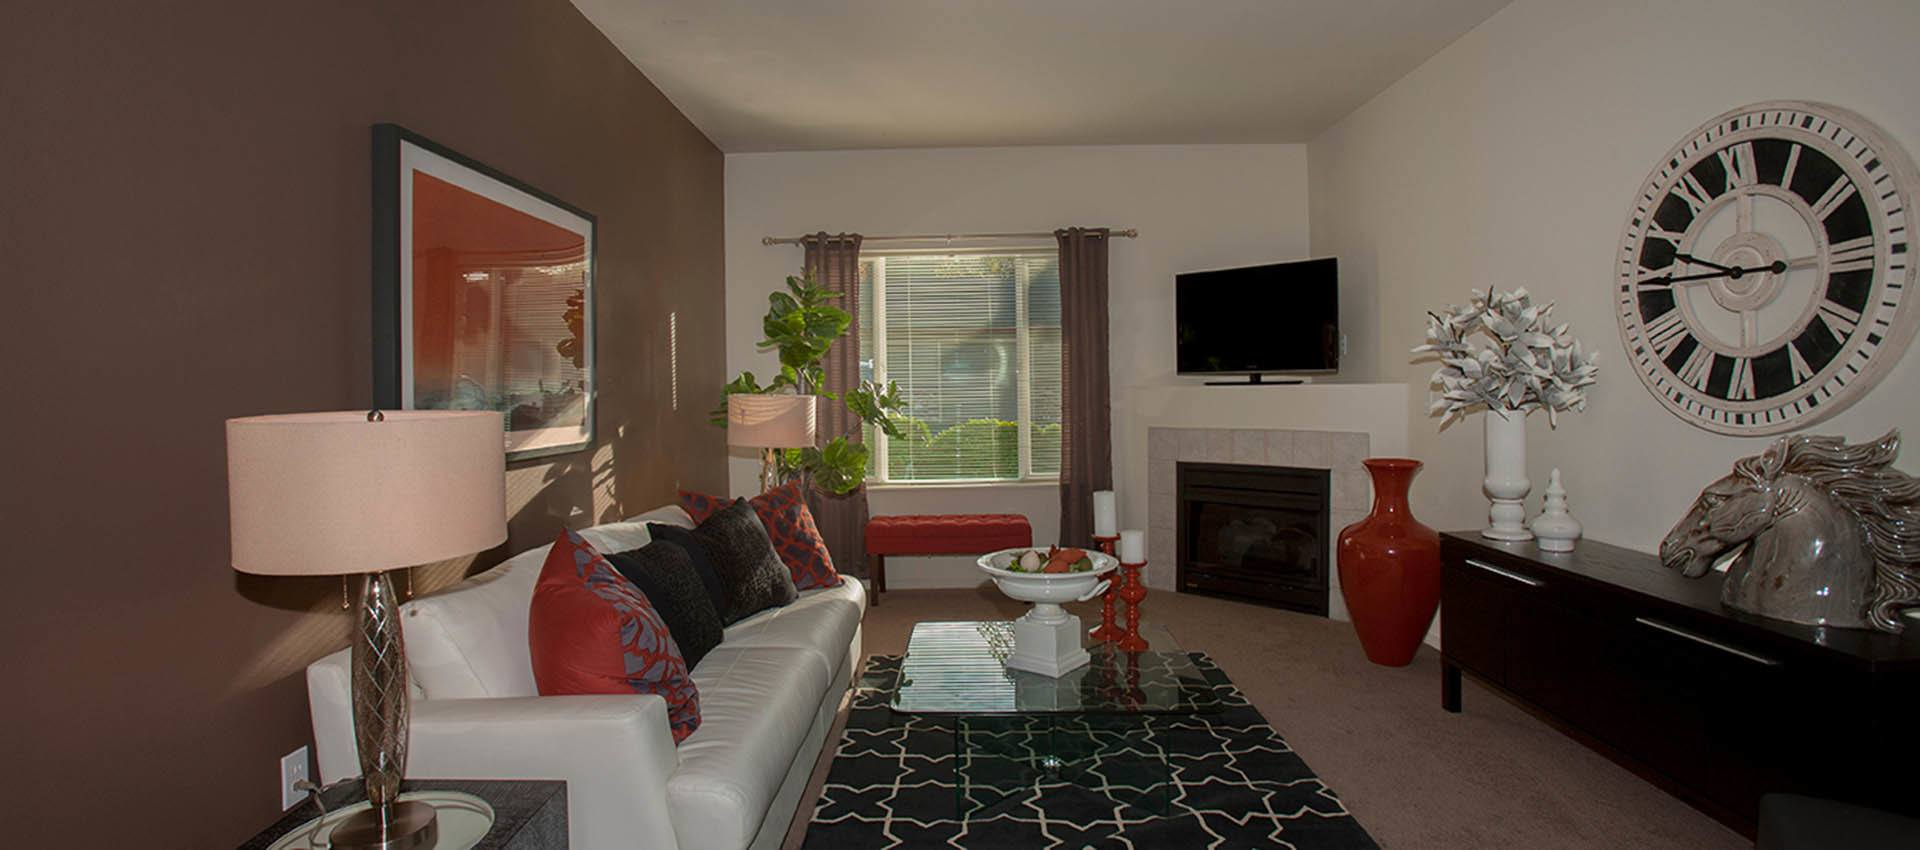 Living Room In Standard Residence at Altamont Summit in Happy Valley, OR